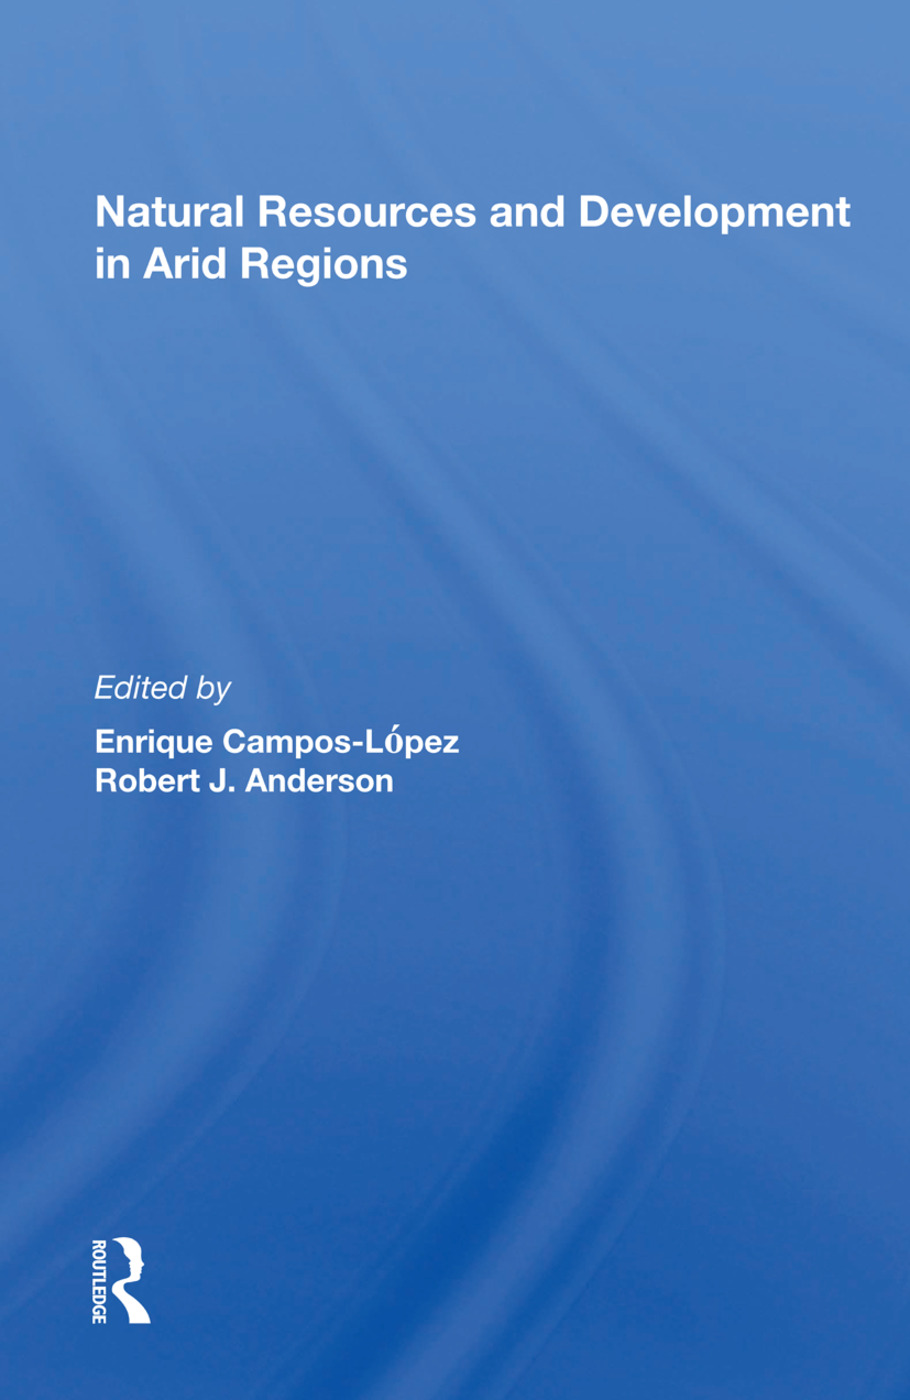 Natural Resources and Development in Arid Regions